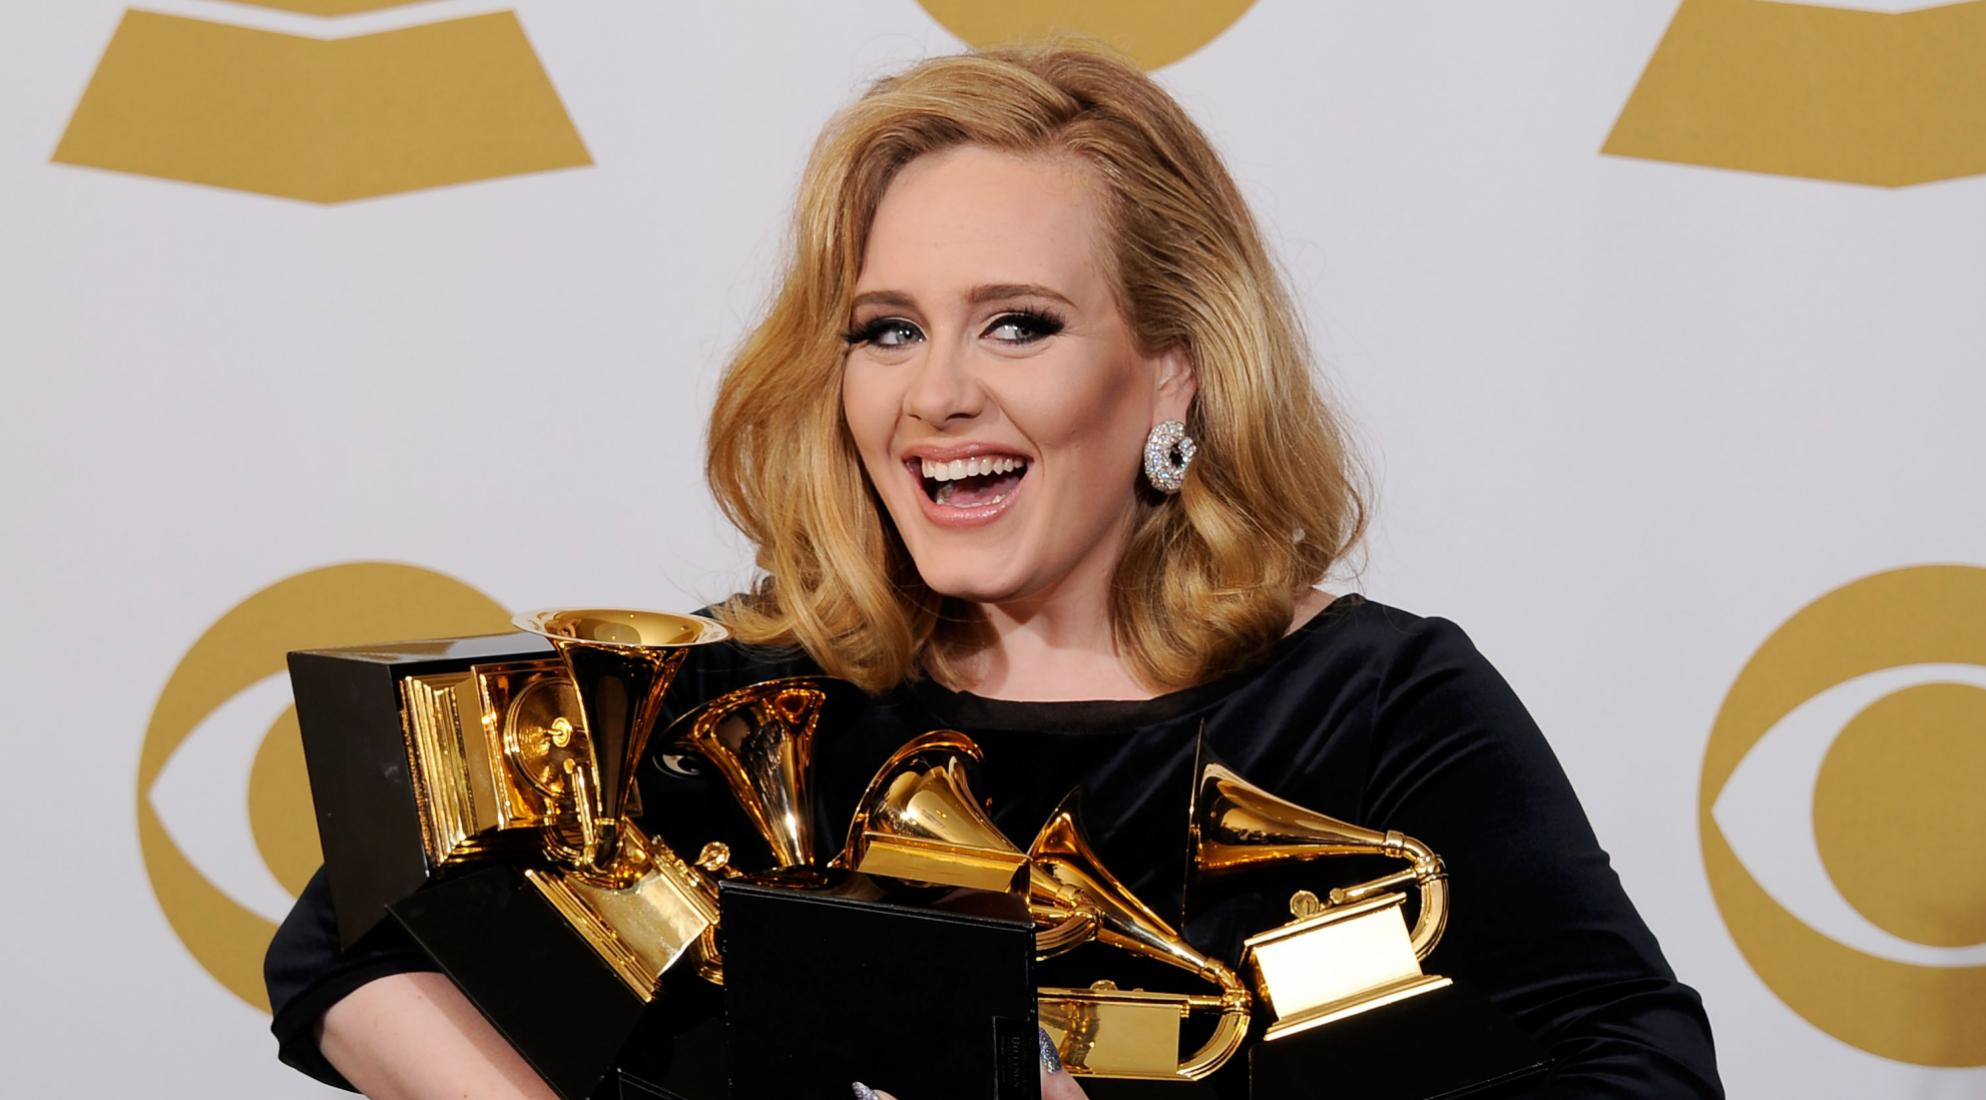 Adele at the 54th GRAMMY Awards in 2012